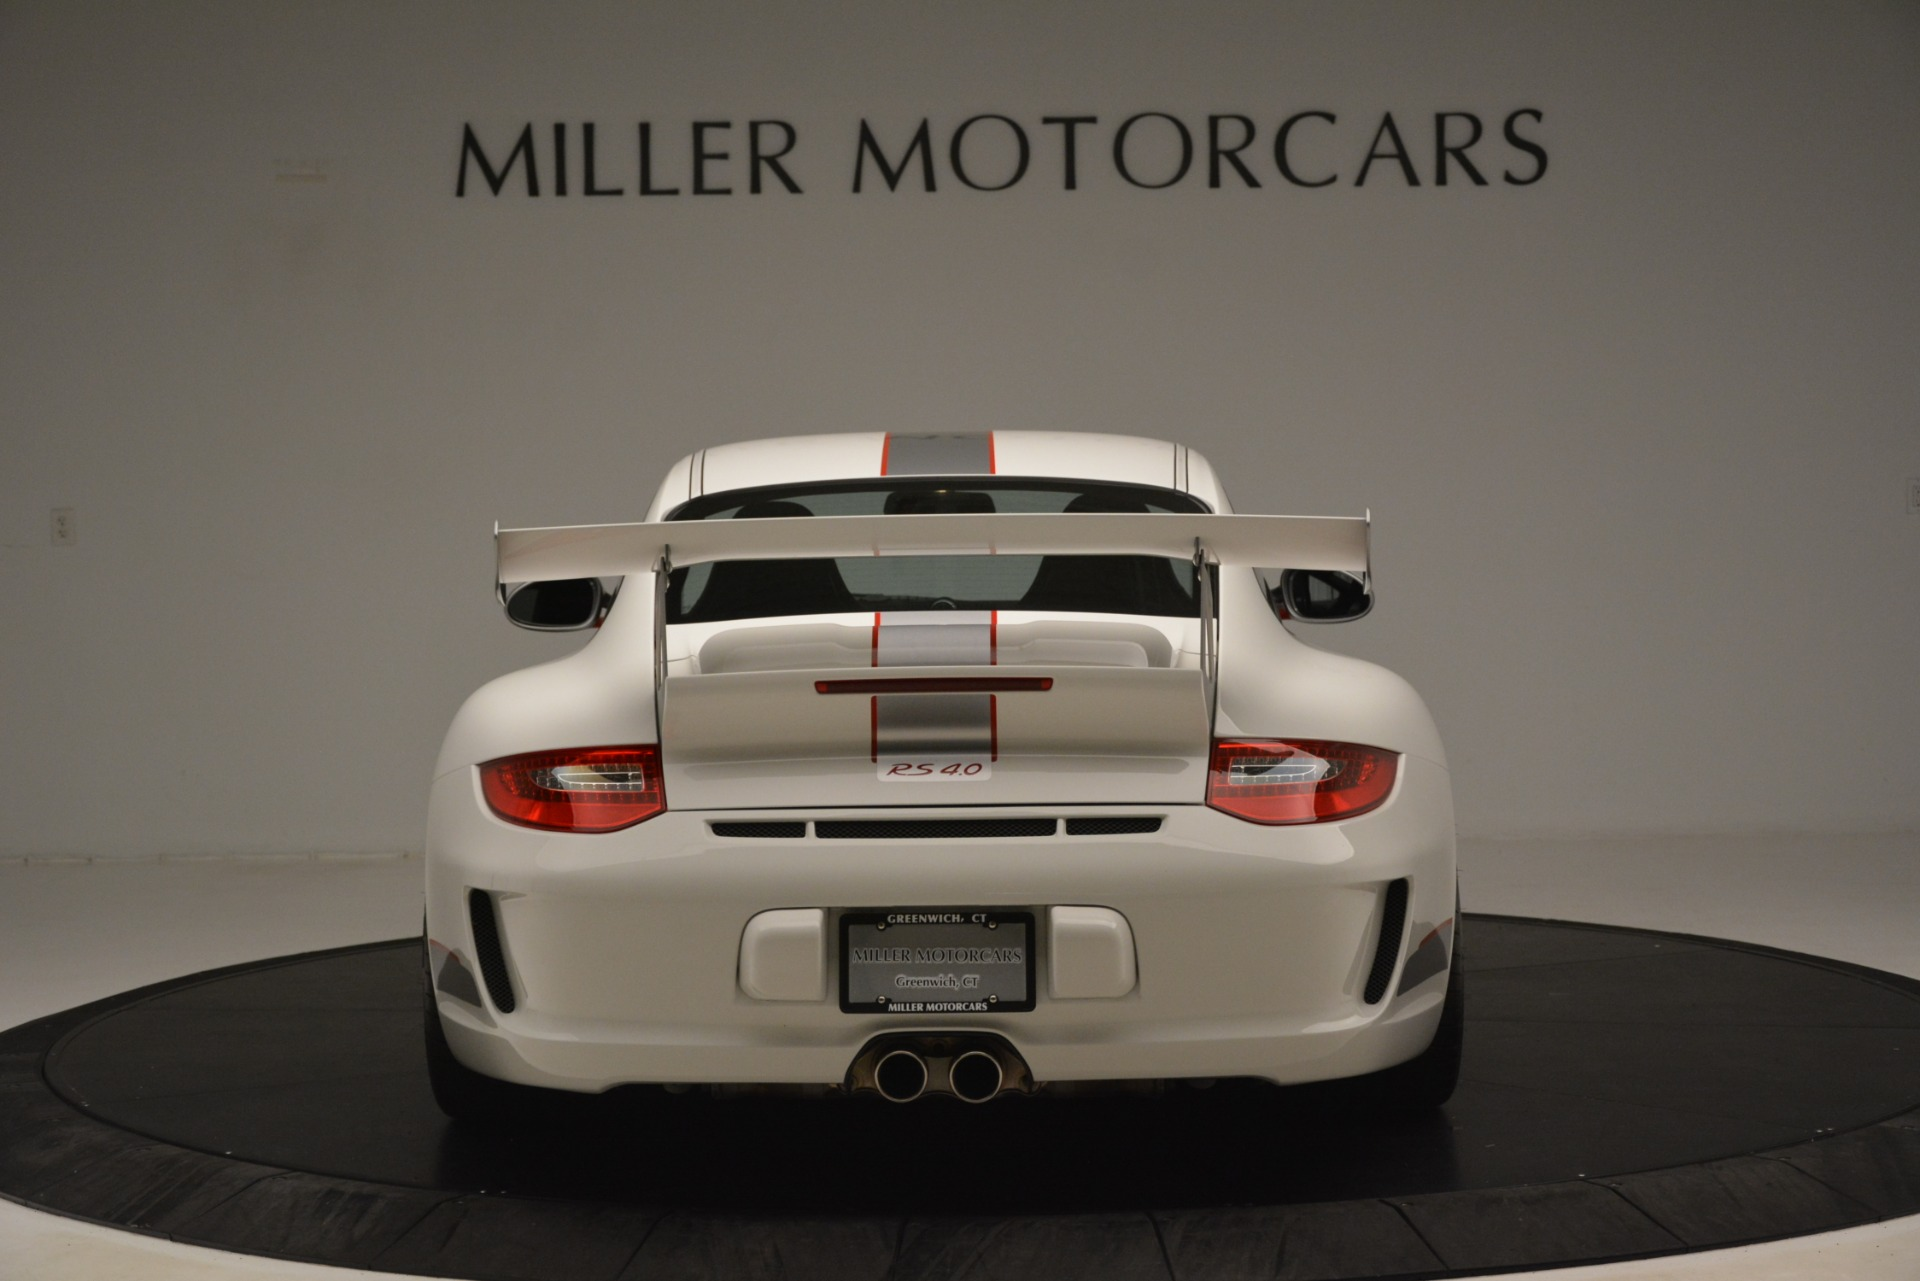 Used 2011 Porsche 911 GT3 RS 4.0 For Sale In Greenwich, CT 3188_p6